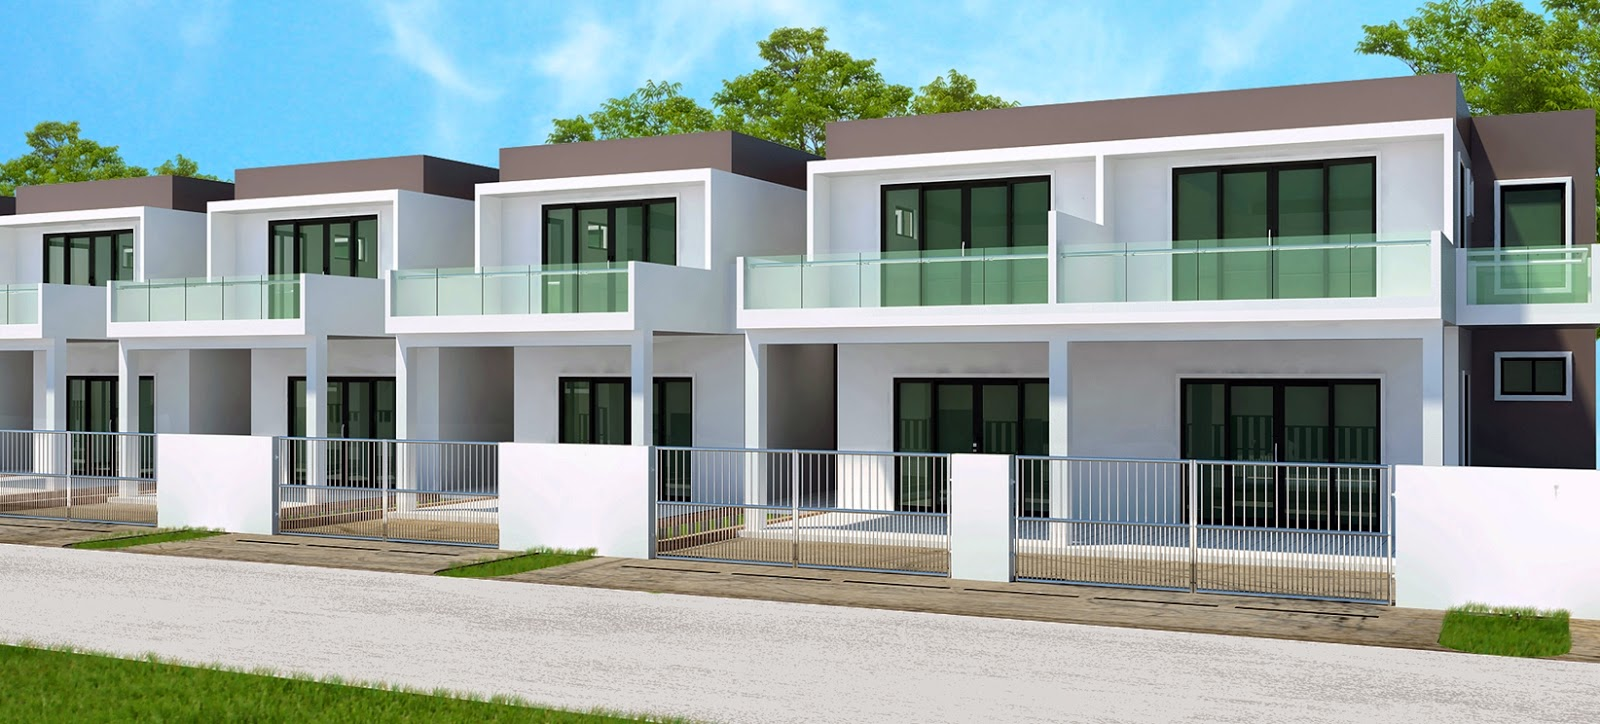 Double storey terraced houses for sale kg mata mata for Projects of houses